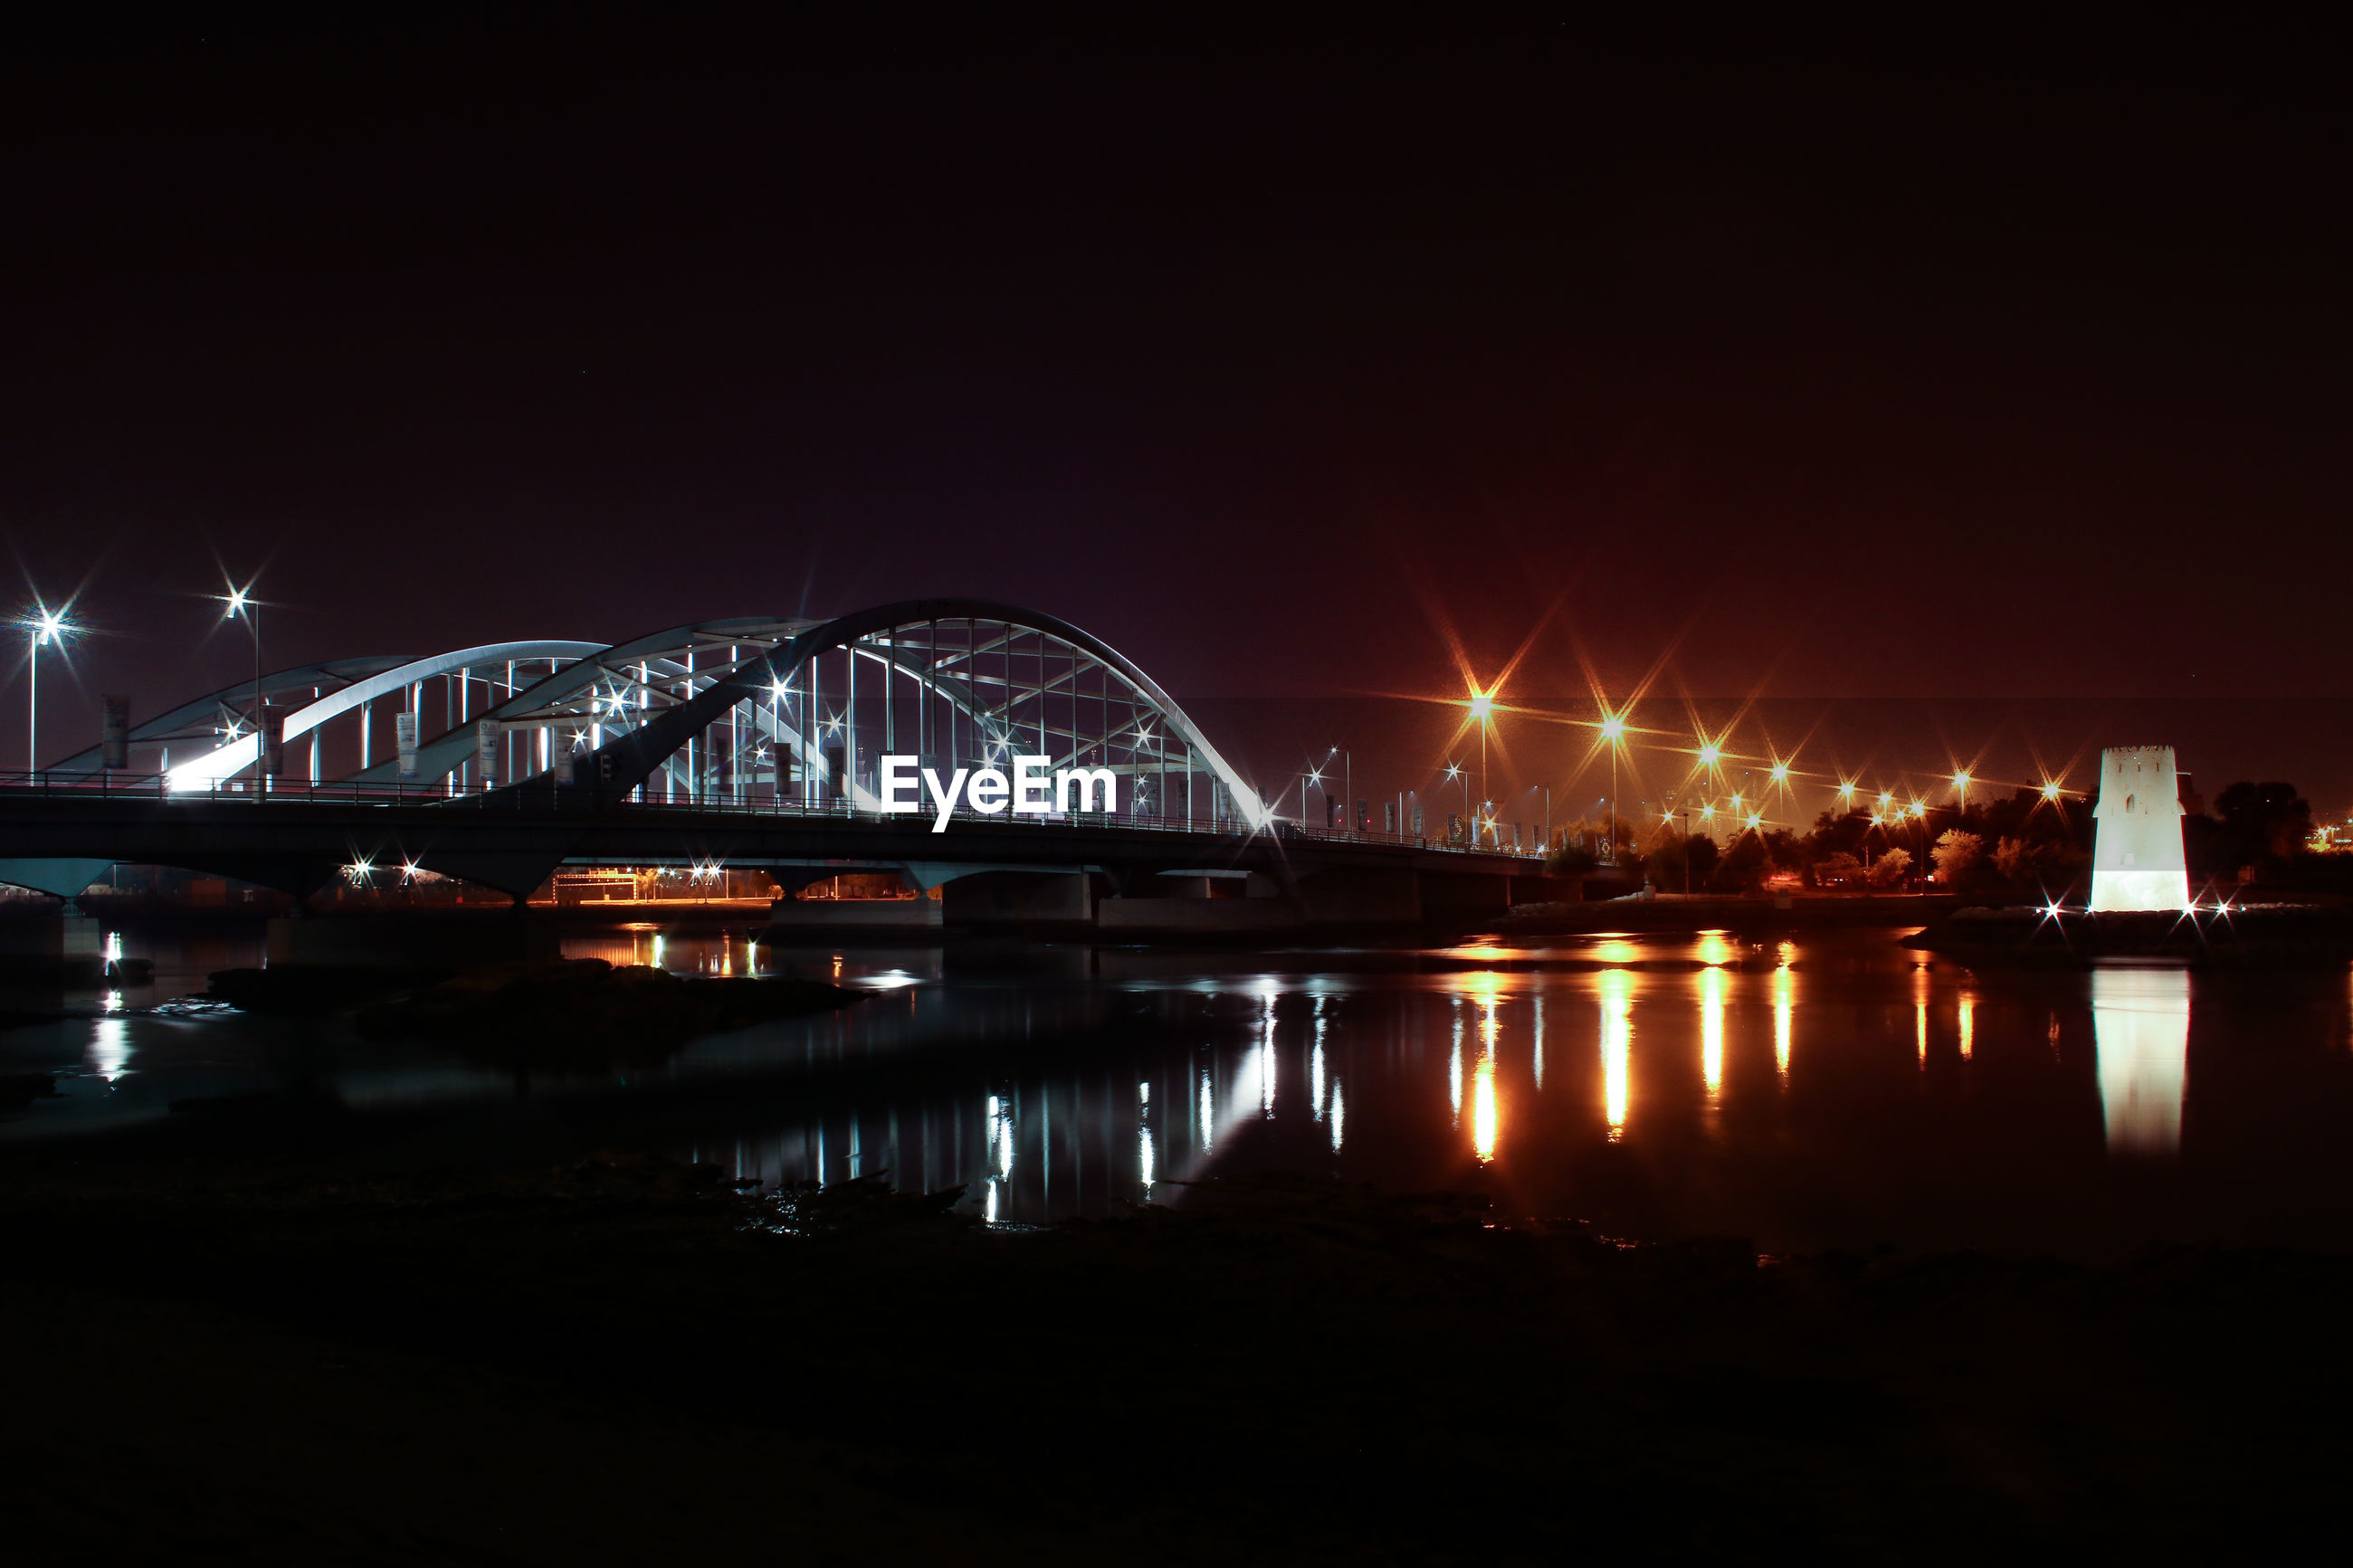 ILLUMINATED BRIDGE OVER RIVER AGAINST SKY